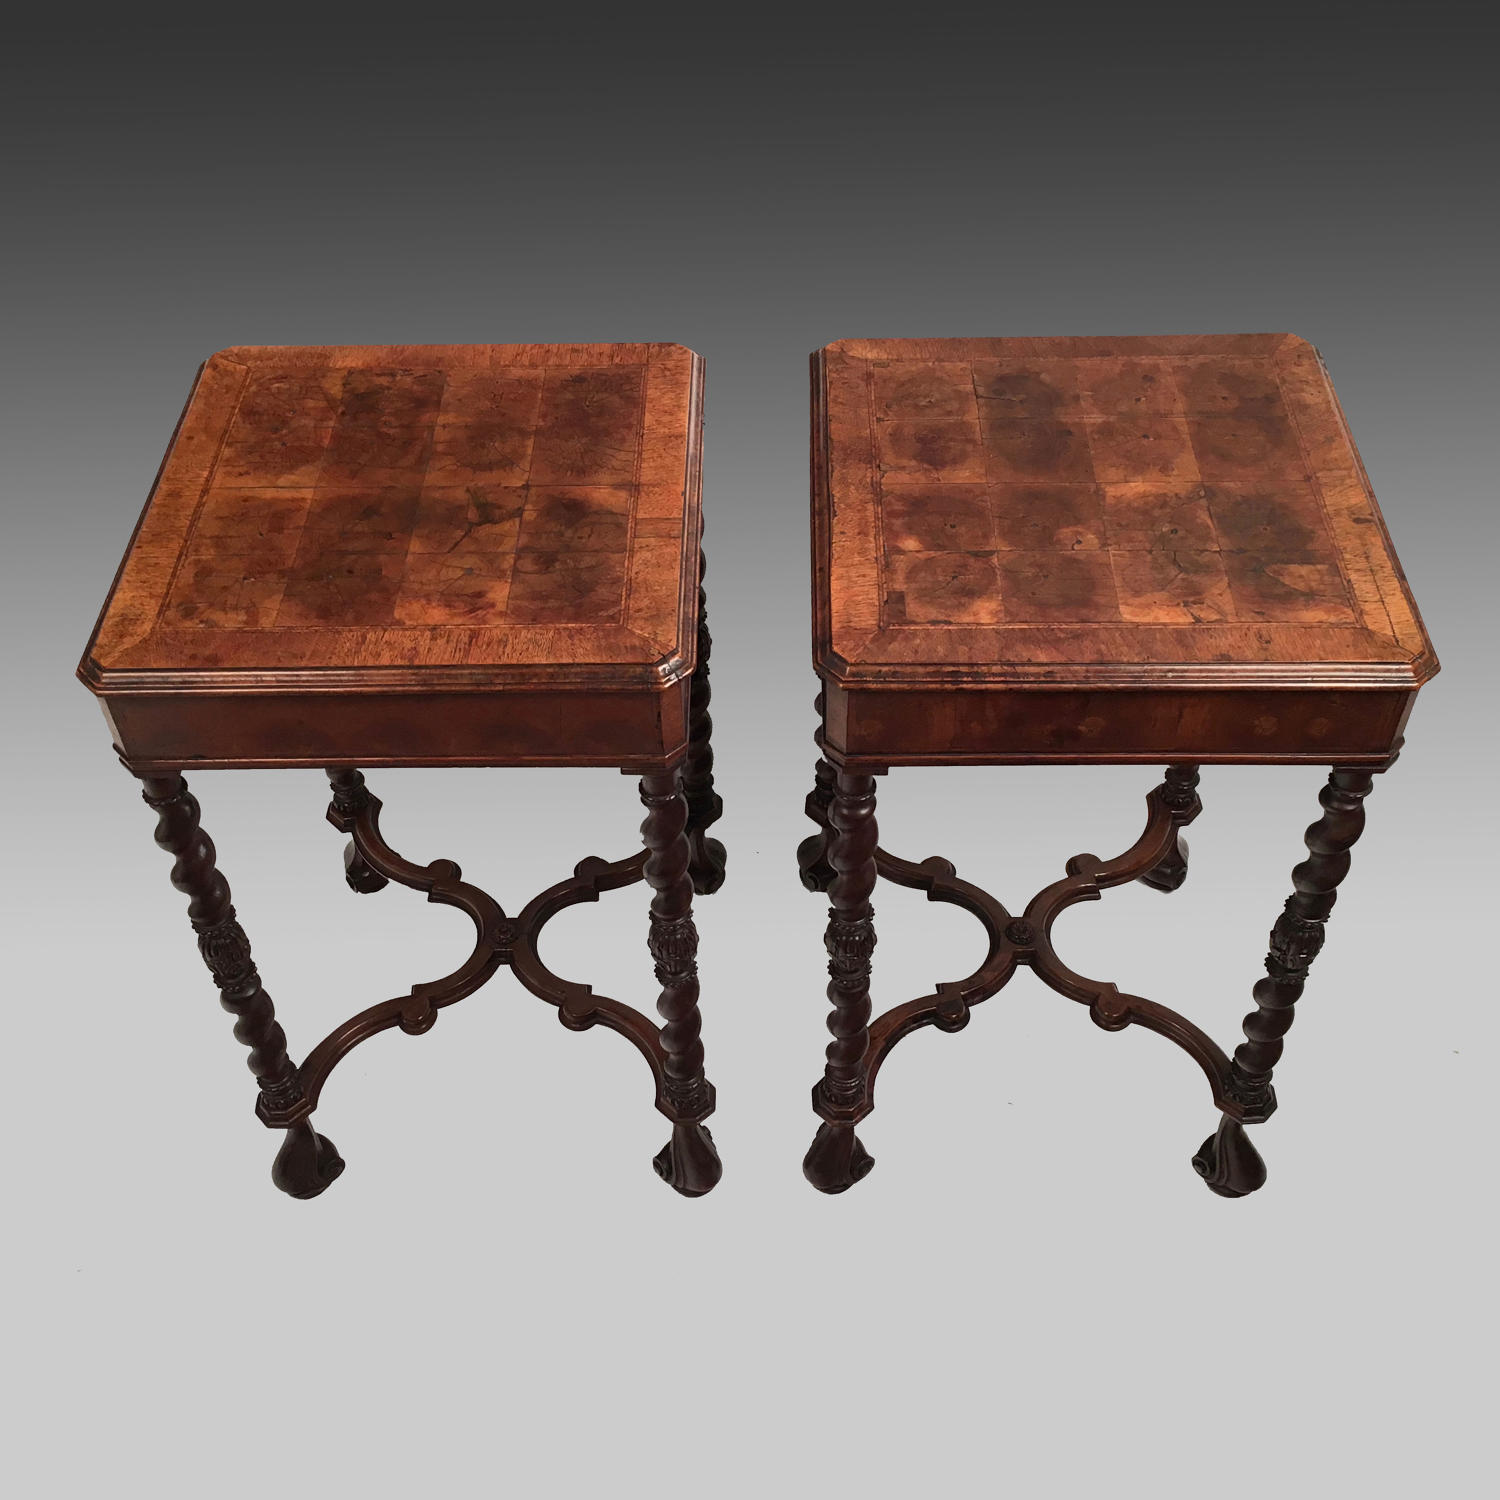 Pair of walnut occasional tables